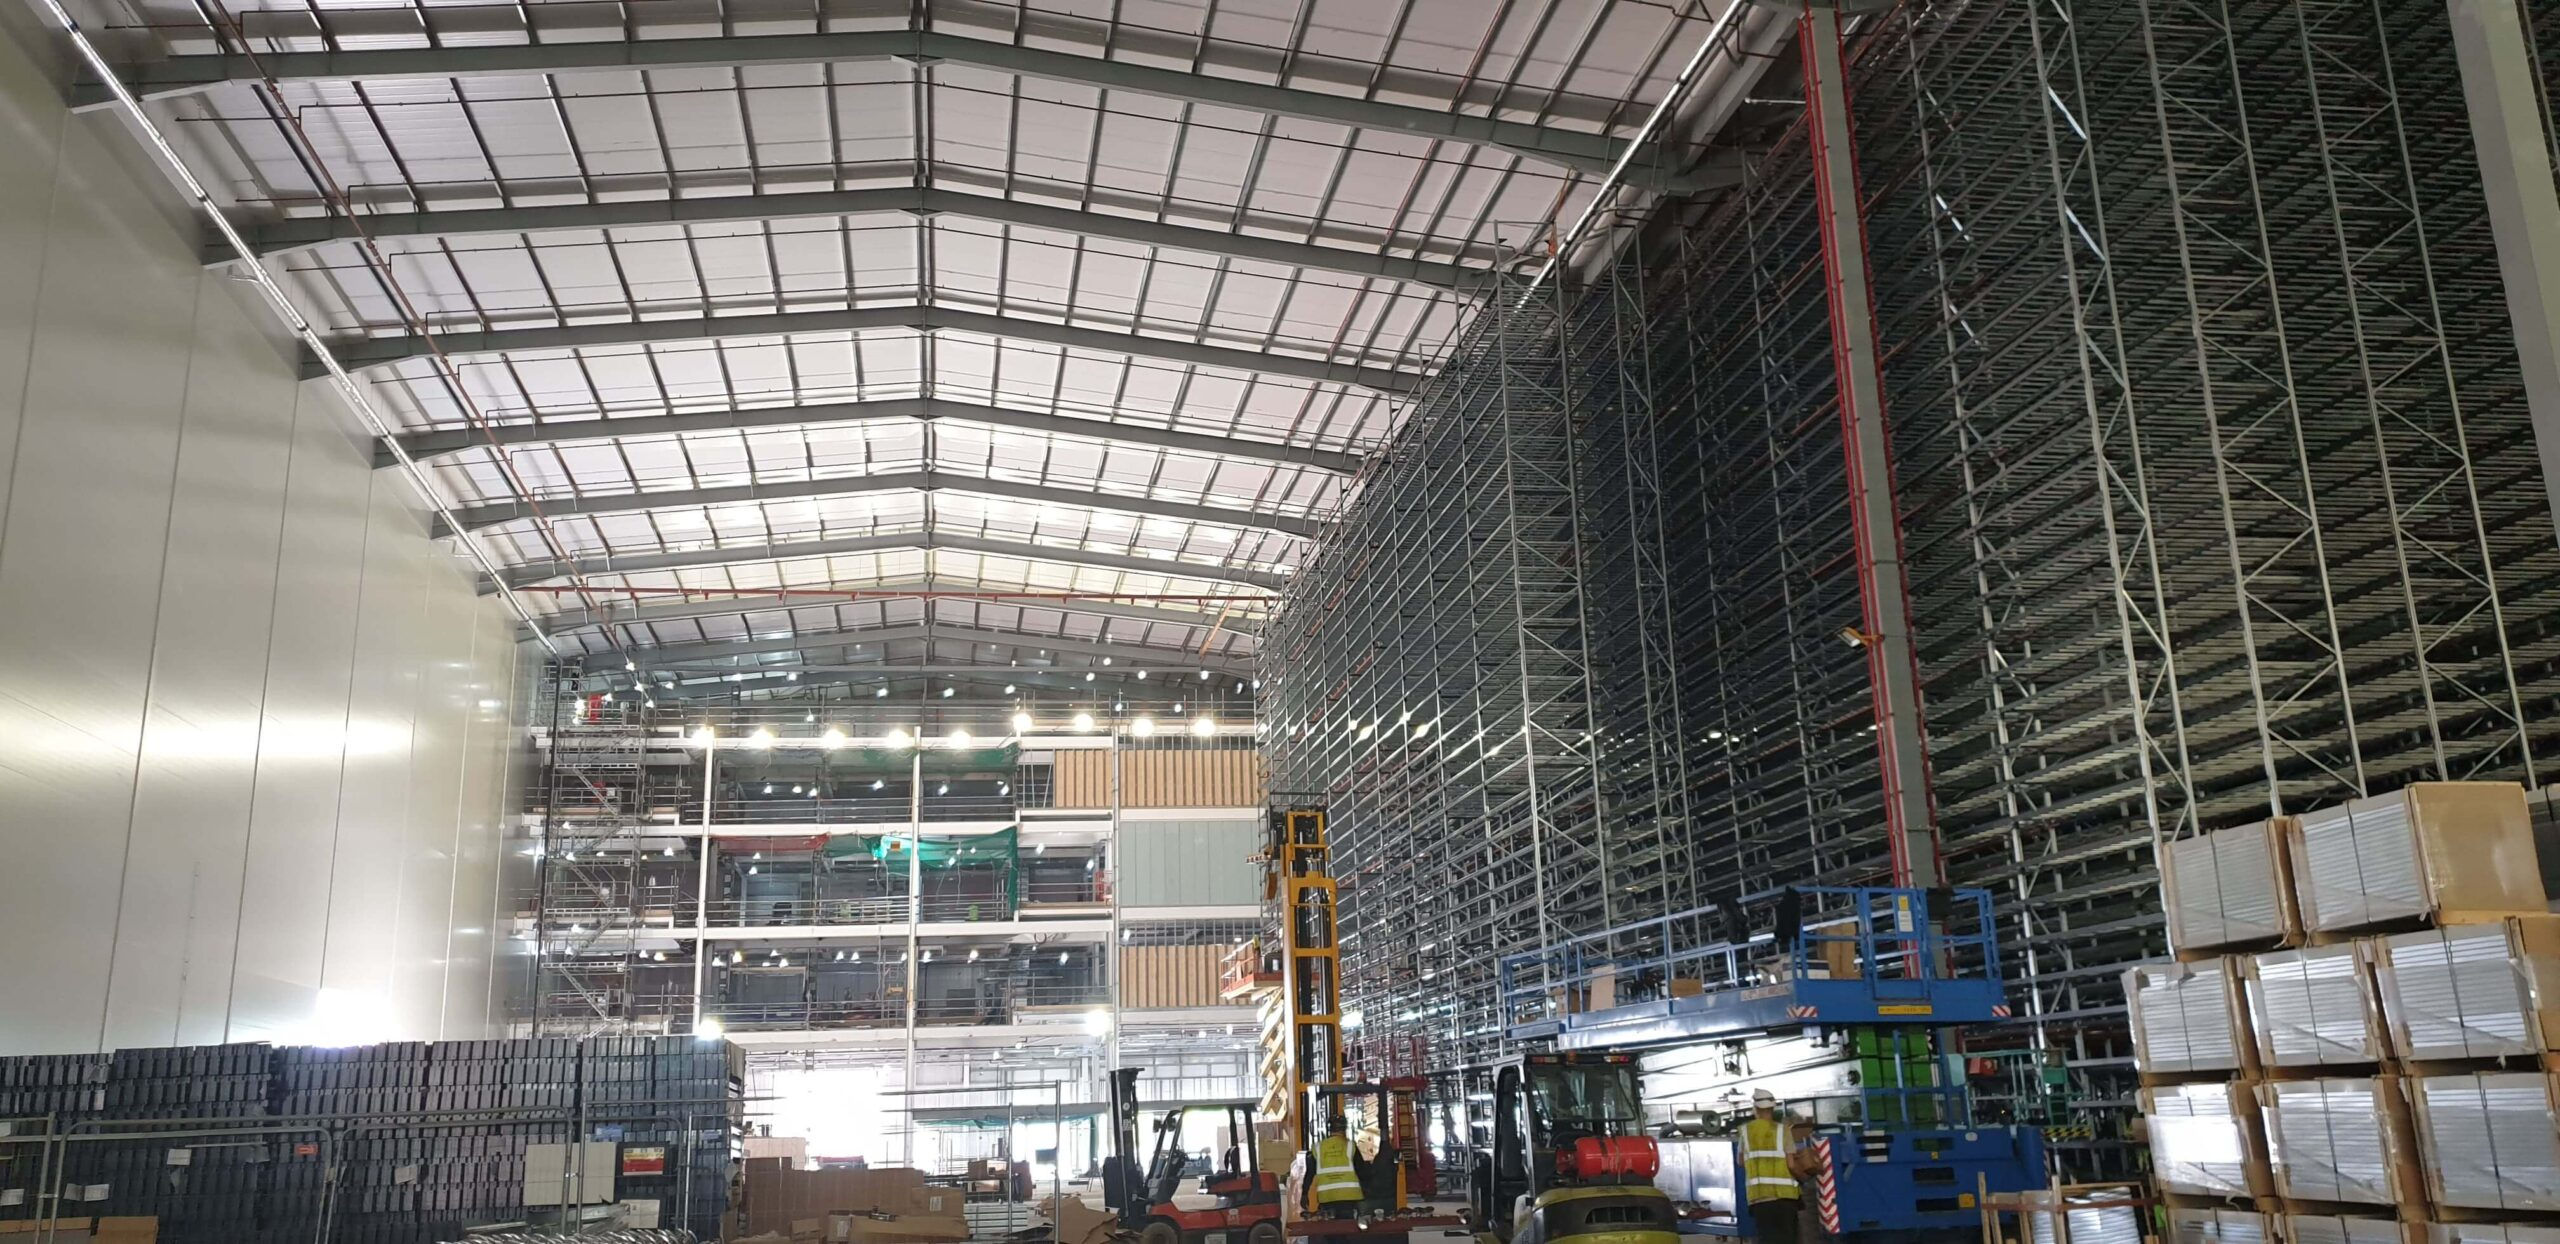 Next High Bay - Extension of Existing Building